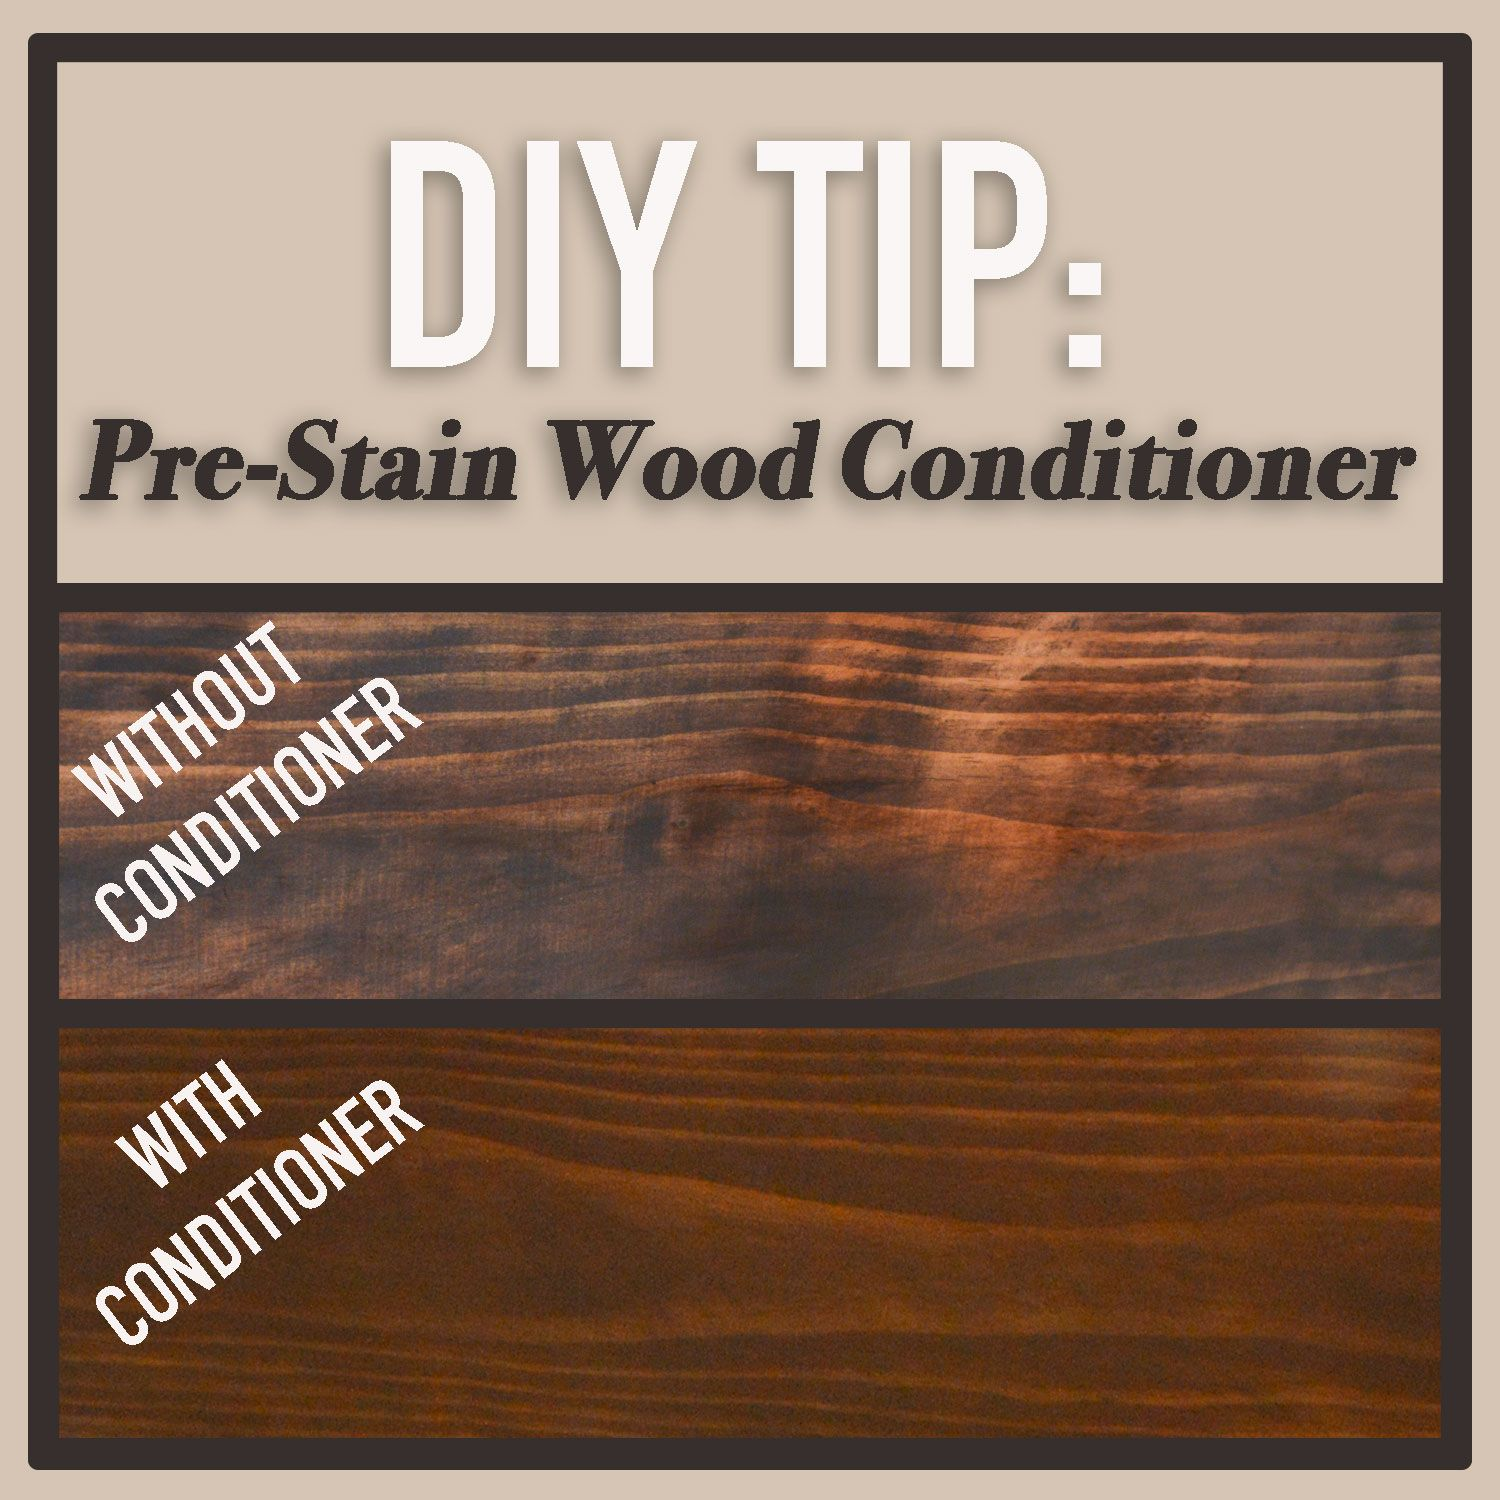 Diy Tip Pre Stain Wood Conditioner